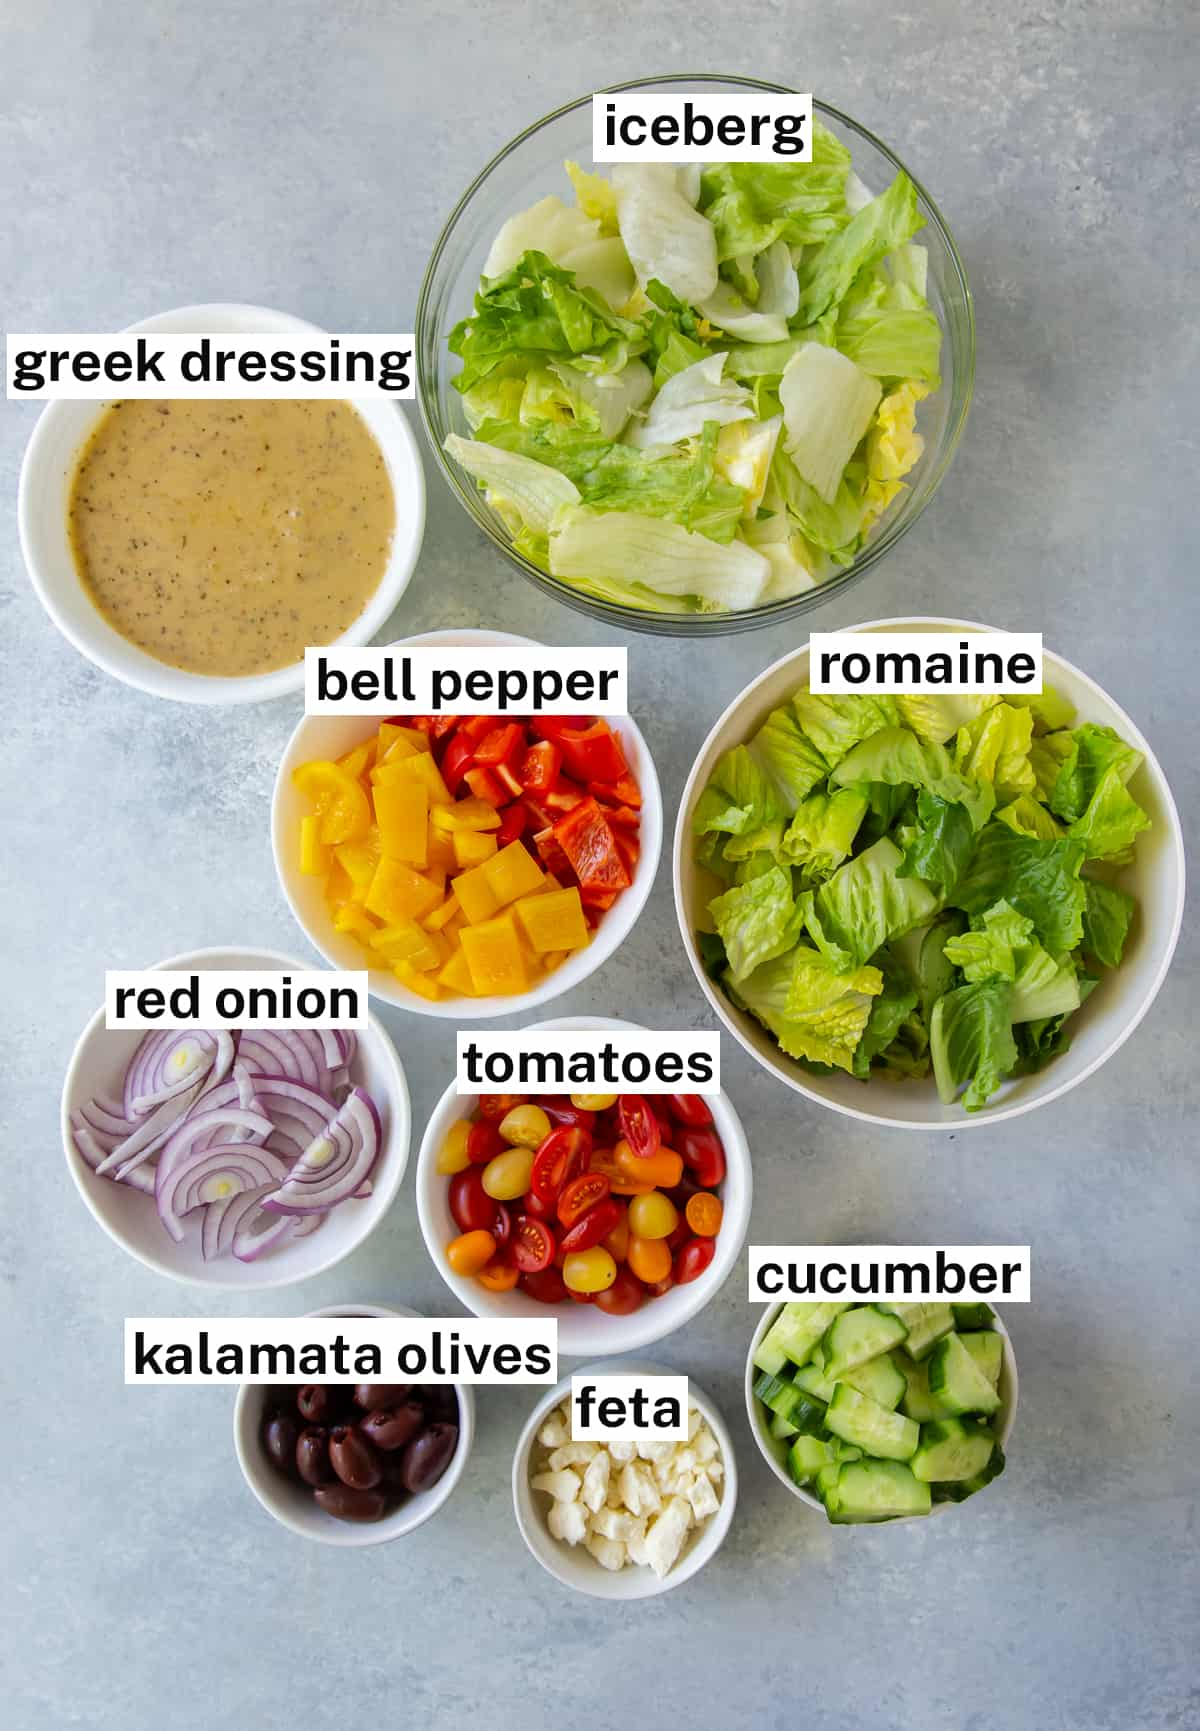 The ingredients to make Greek Salad with text overlay.